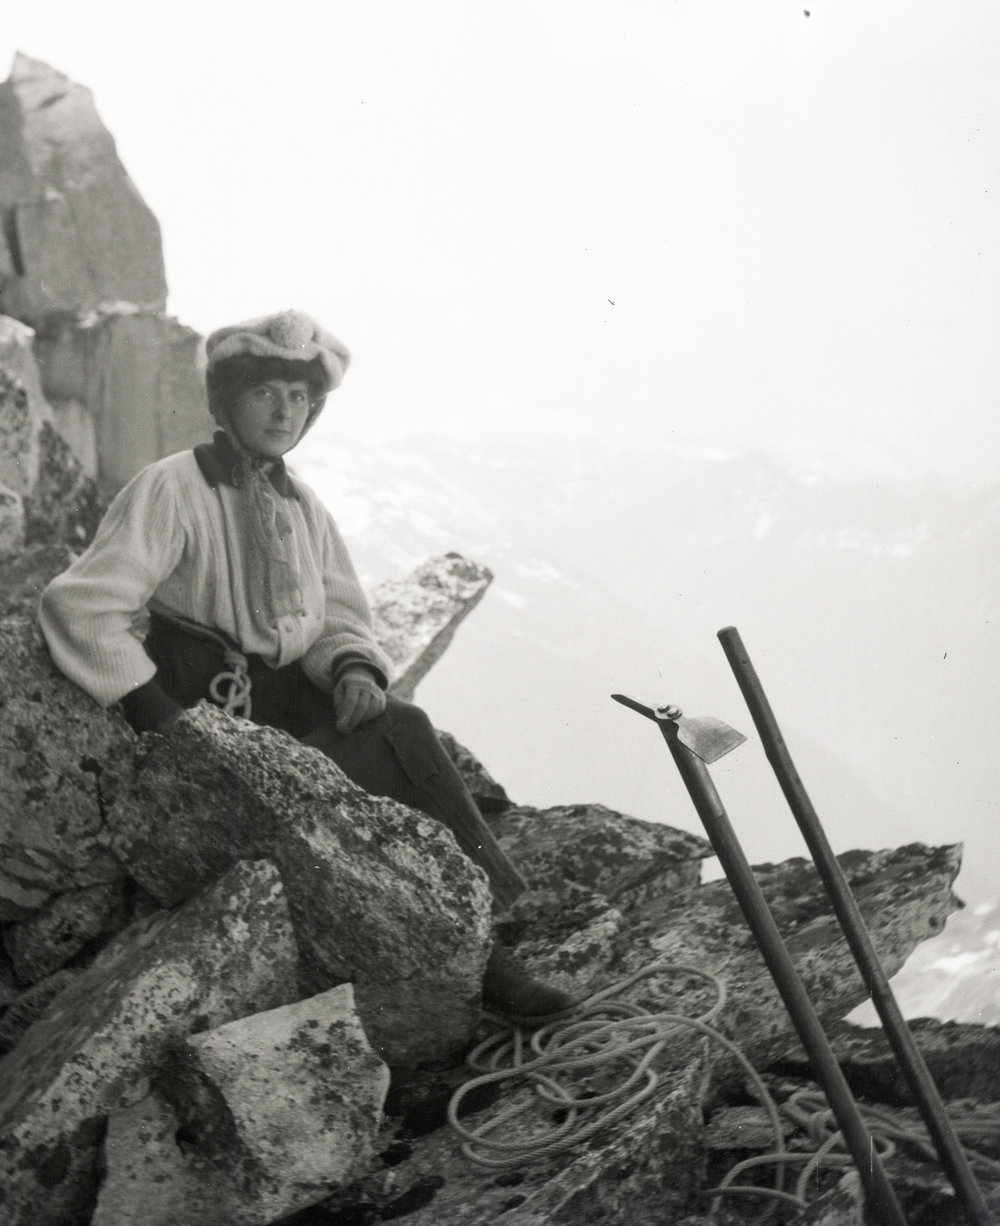 Ice axes and women's pre-1925 climbing attire.